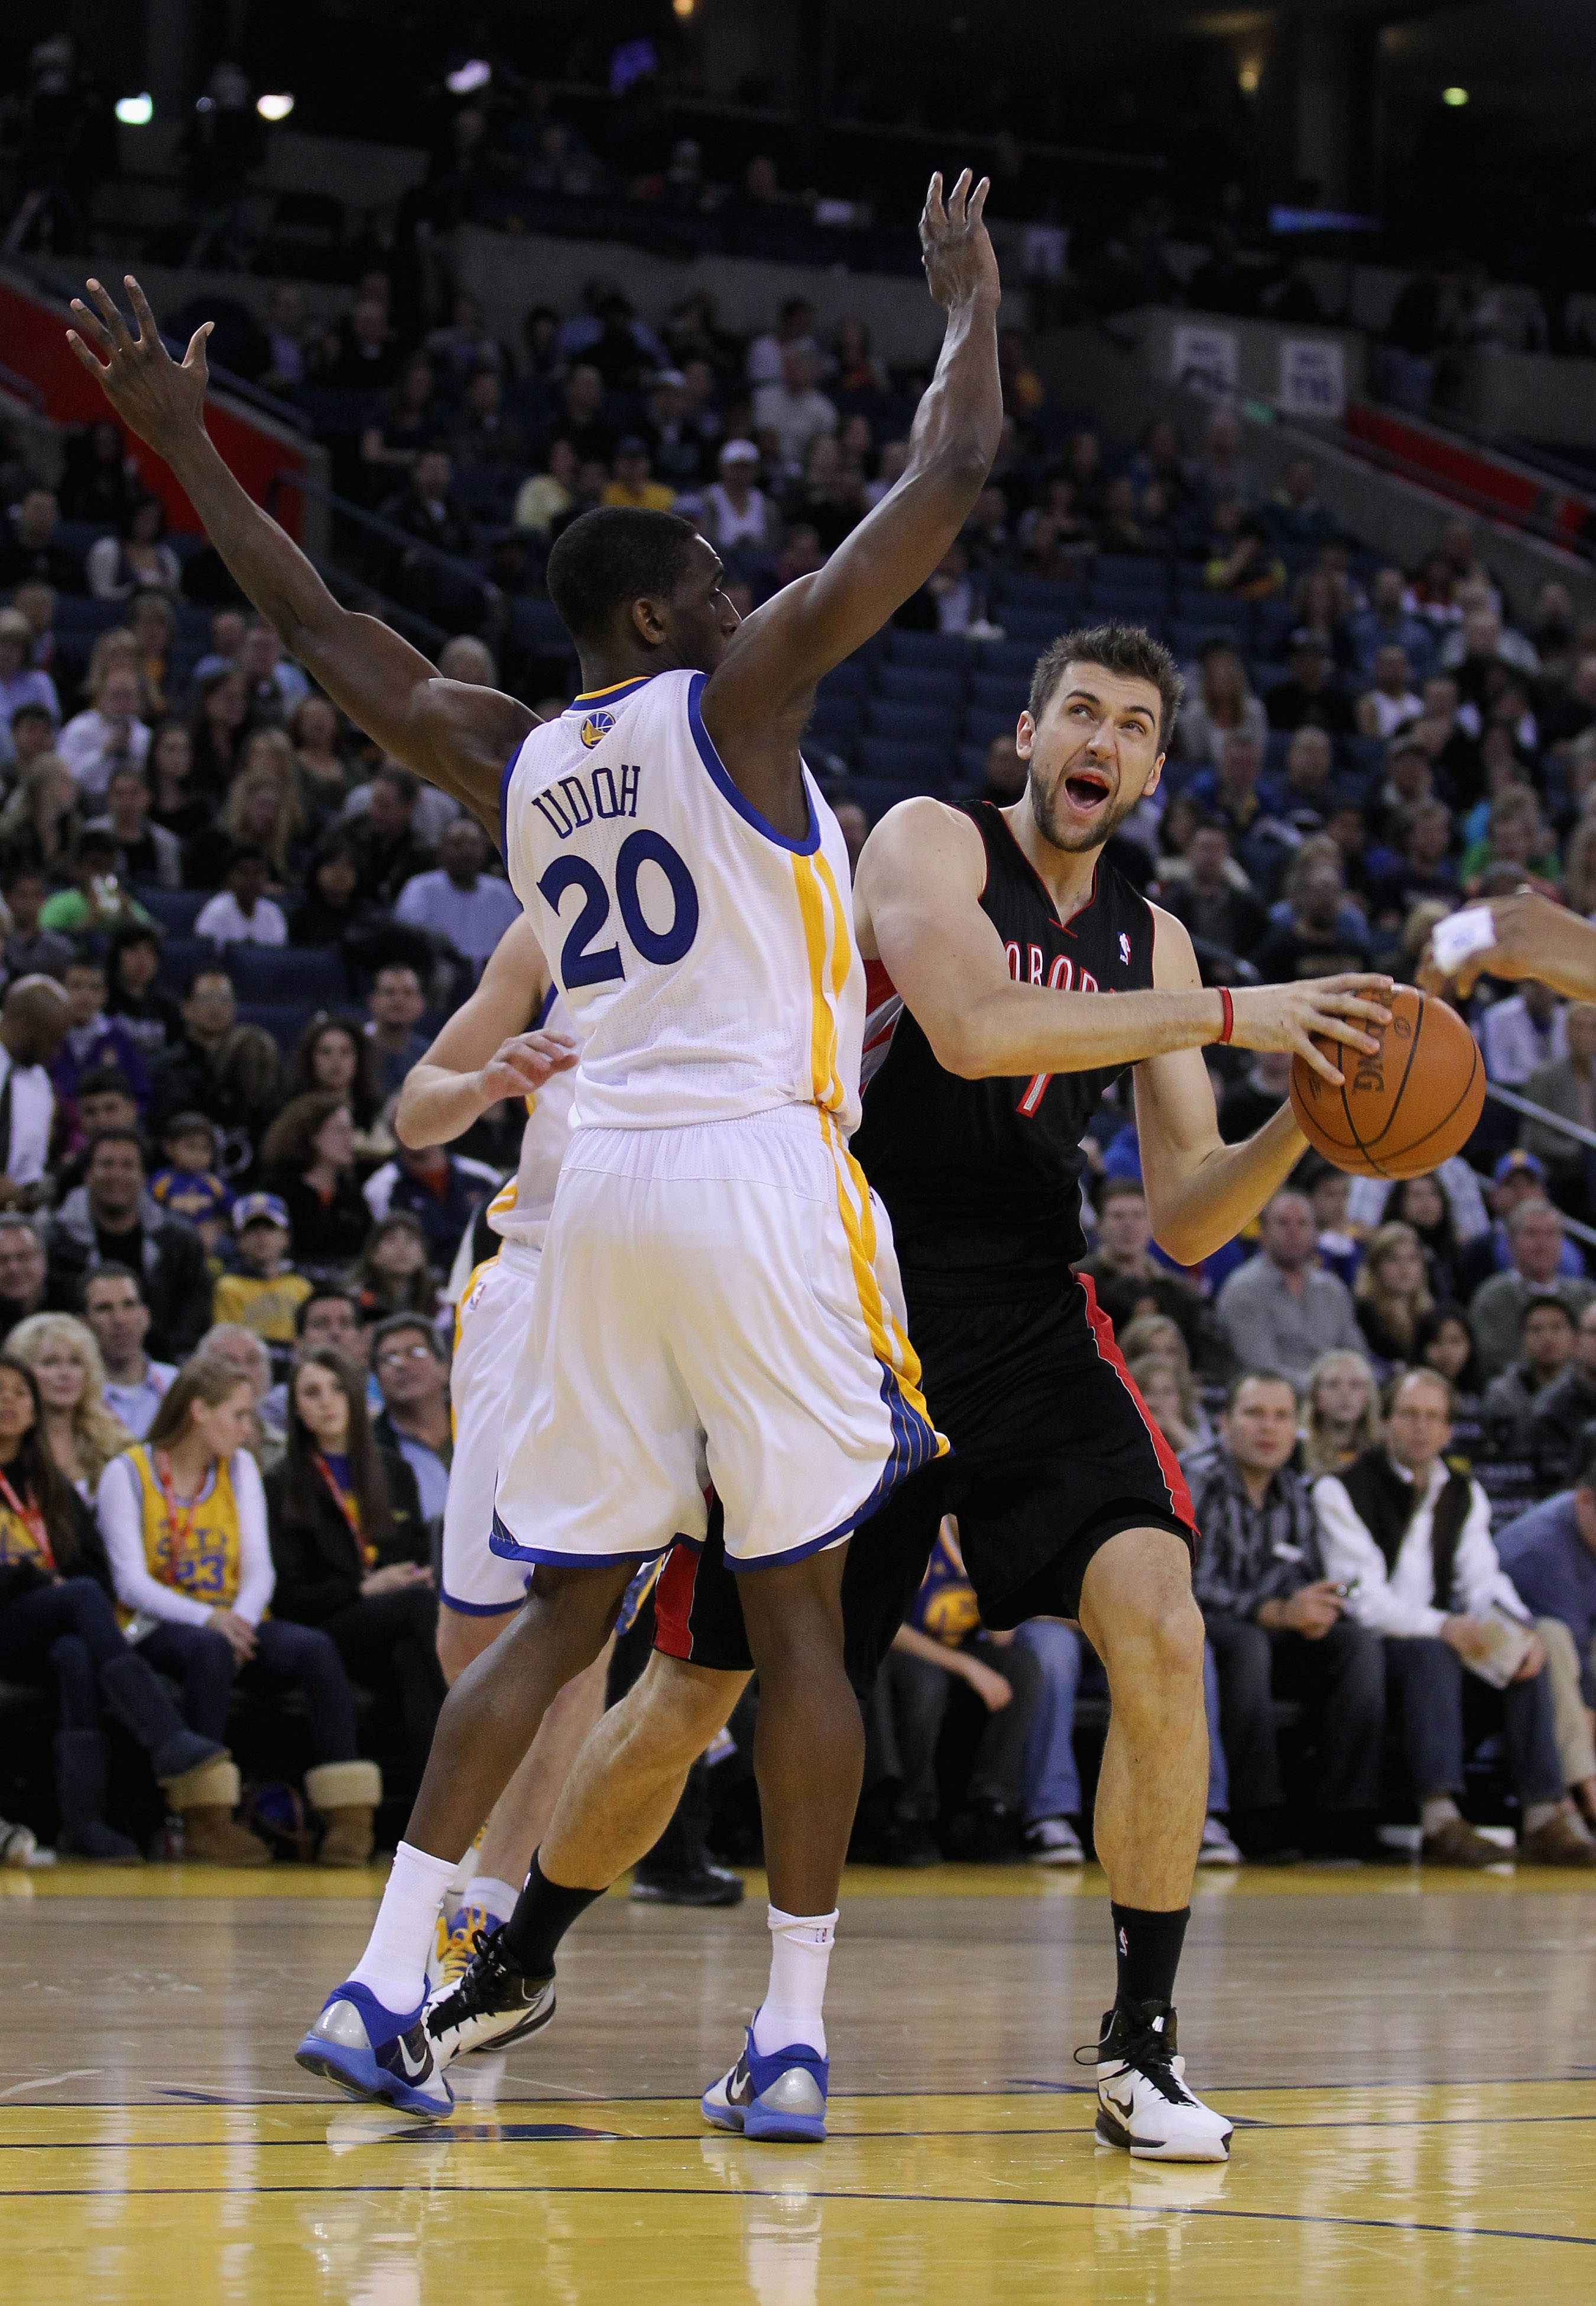 OAKLAND, CA - MARCH 25: Andrea Bargnani #7 of the Toronto Raptors is guarded by Ekpe Udoh #20 of the Golden State Warriors at Oracle Arena on March 25, 2011 in Oakland, California. NOTE TO USER: User expressly acknowledges and agrees that, by downloading